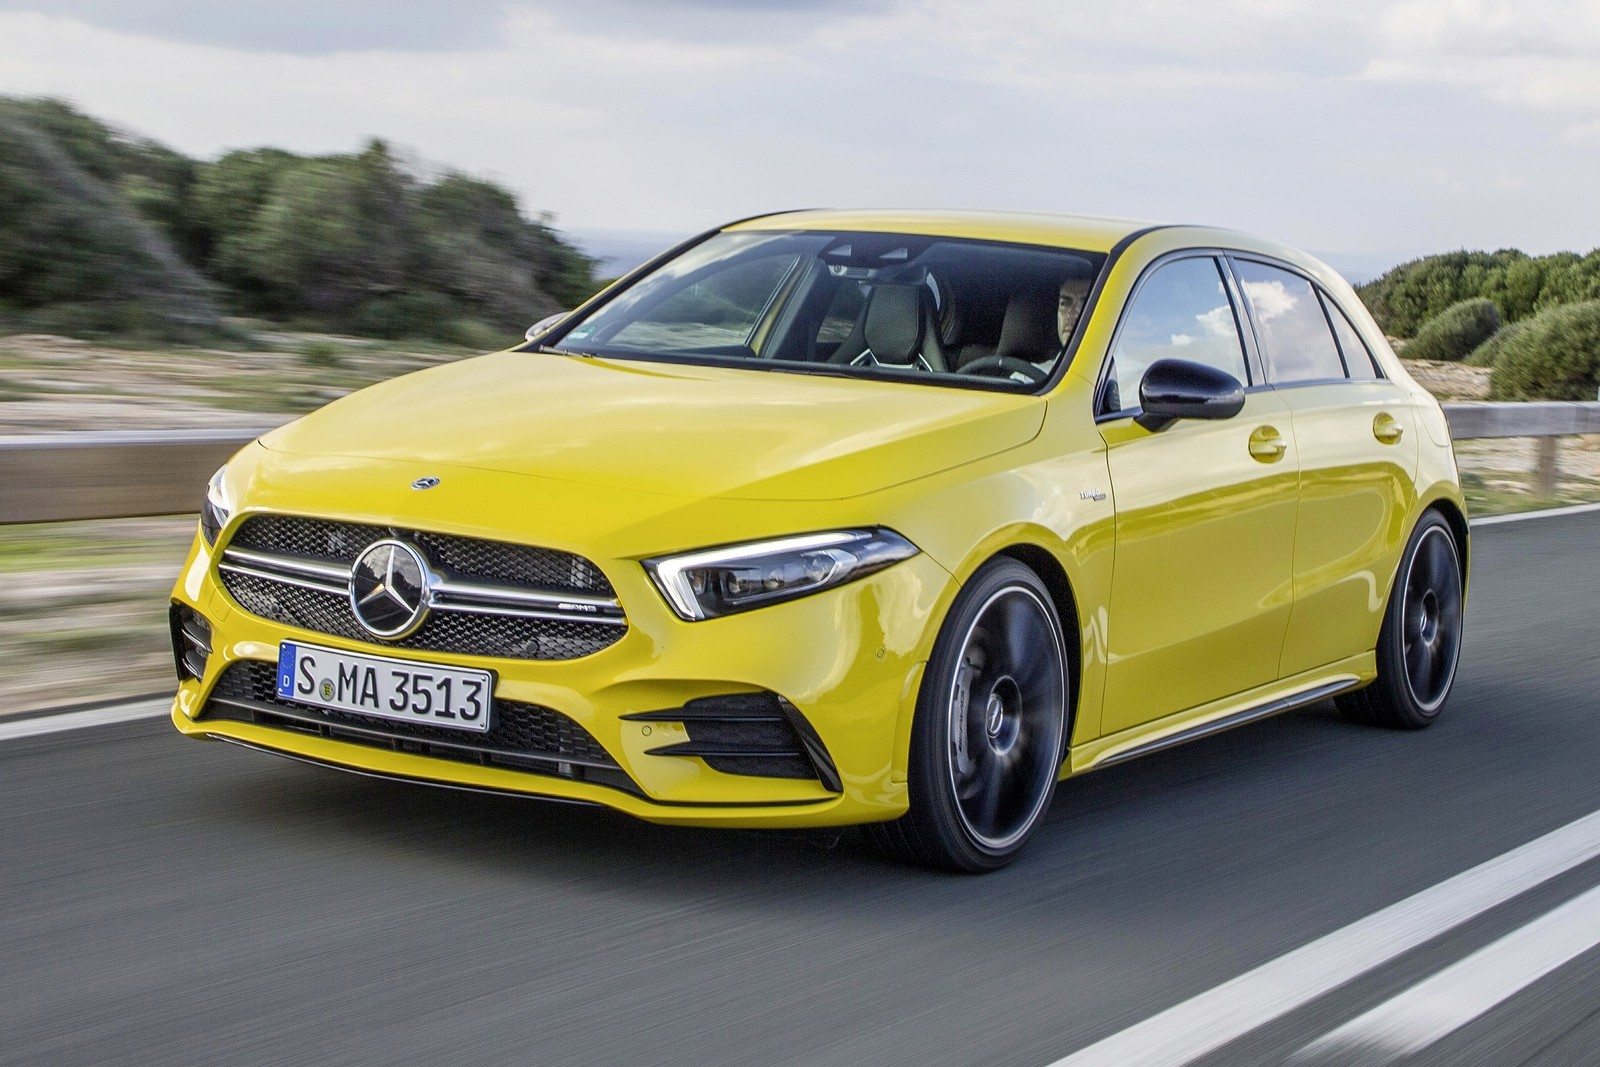 Mercedes-AMG A 35 4MATIC: Neuer Einstieg in die Welt der Driving Performance Mercedes-AMG A 35 4MATIC: New entry-level model opens up the world of driving performance